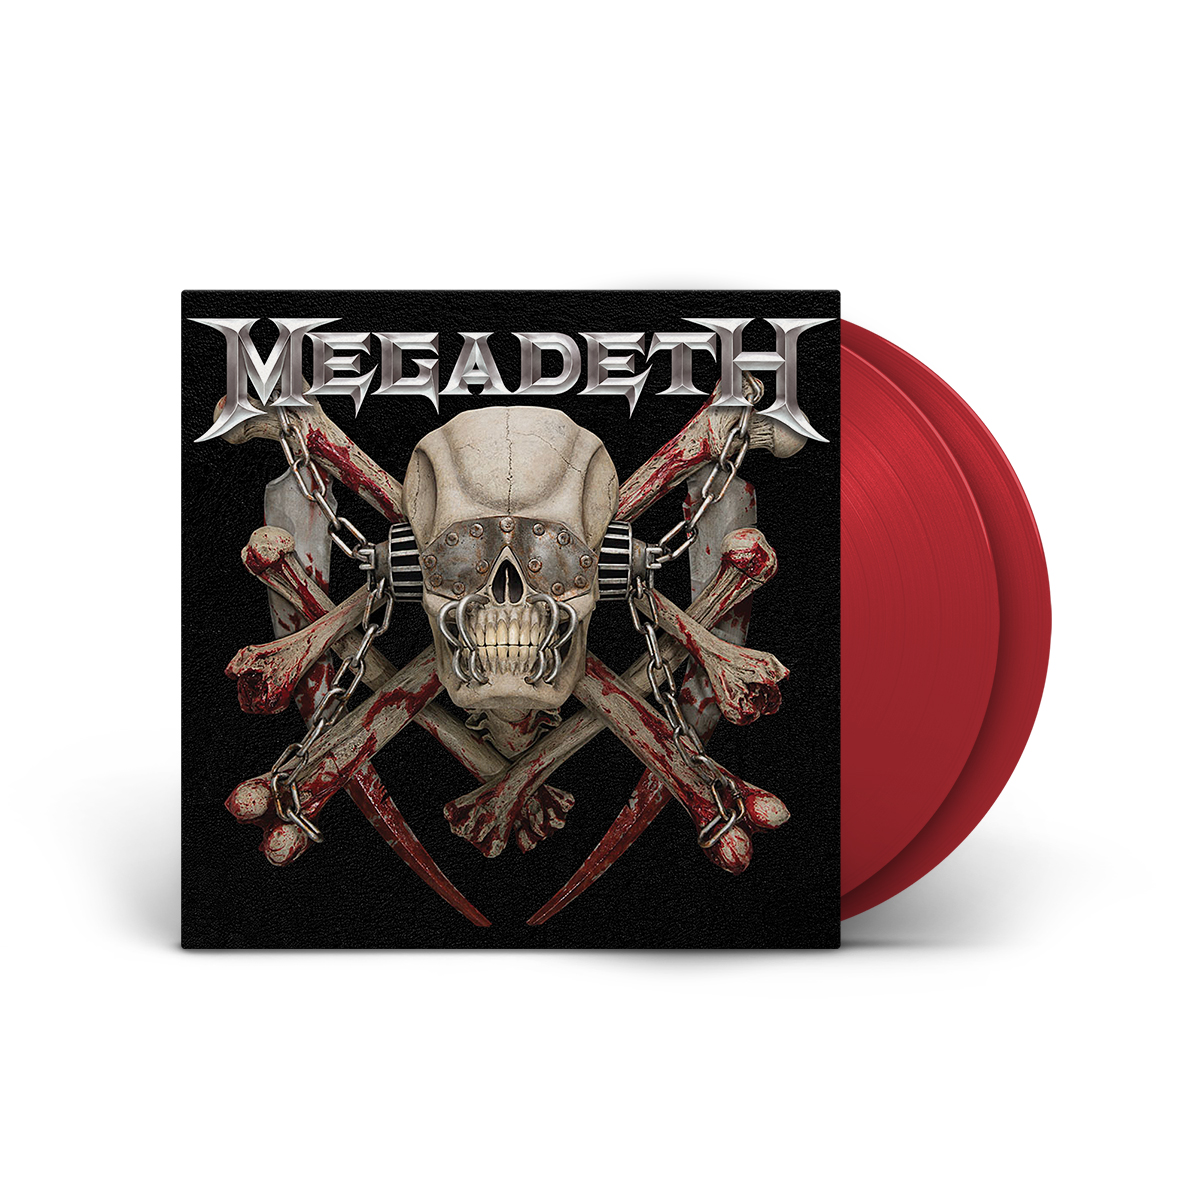 Megadeth - Killing Is My Business... And Business Is Good: The Final Kill Red 2 LP